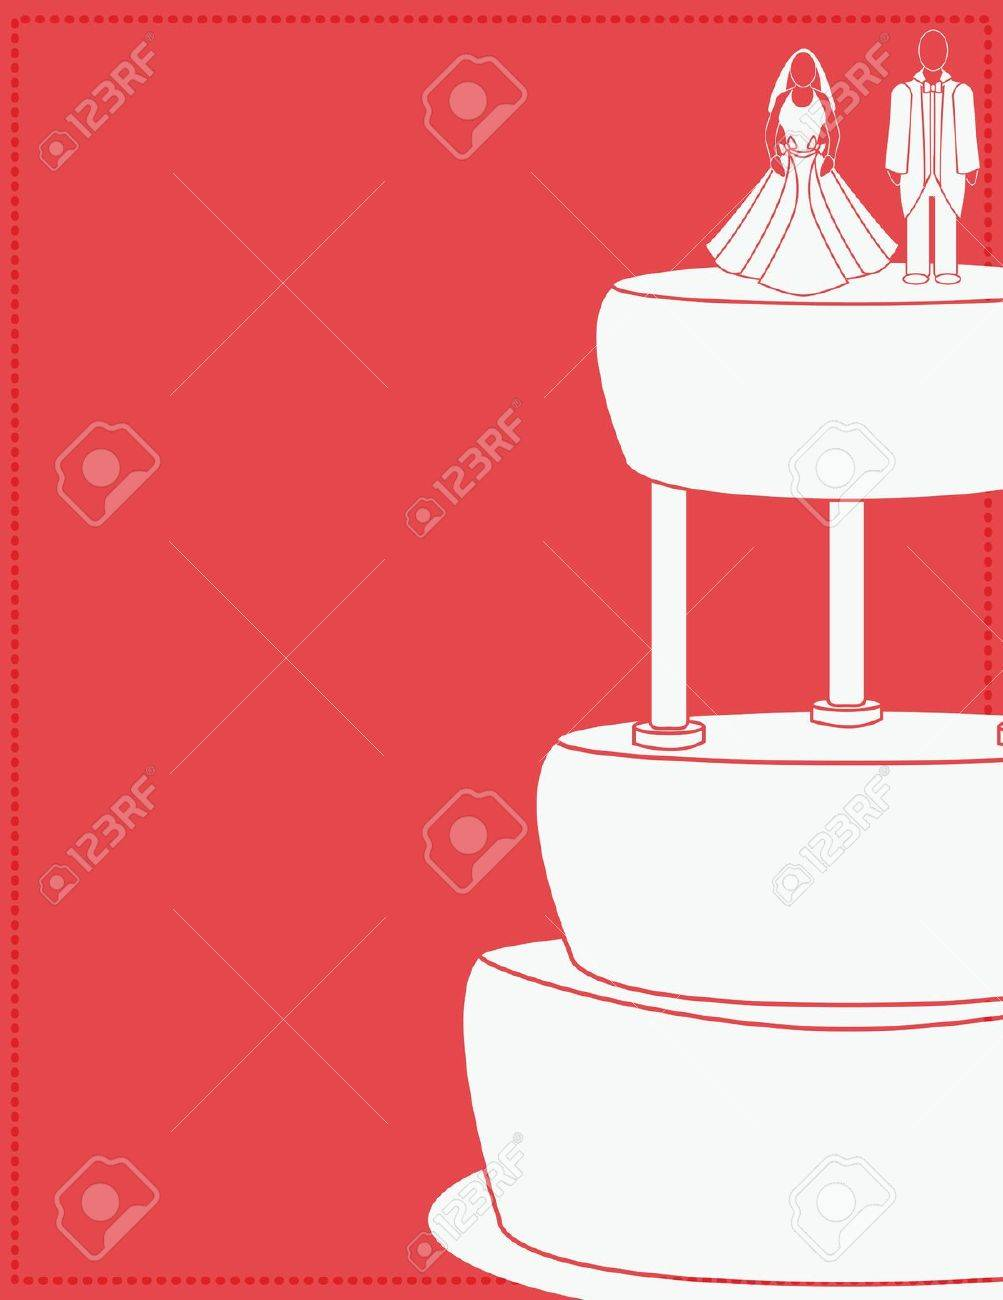 Wedding background for a couple on a cake Stock Vector - 7315125